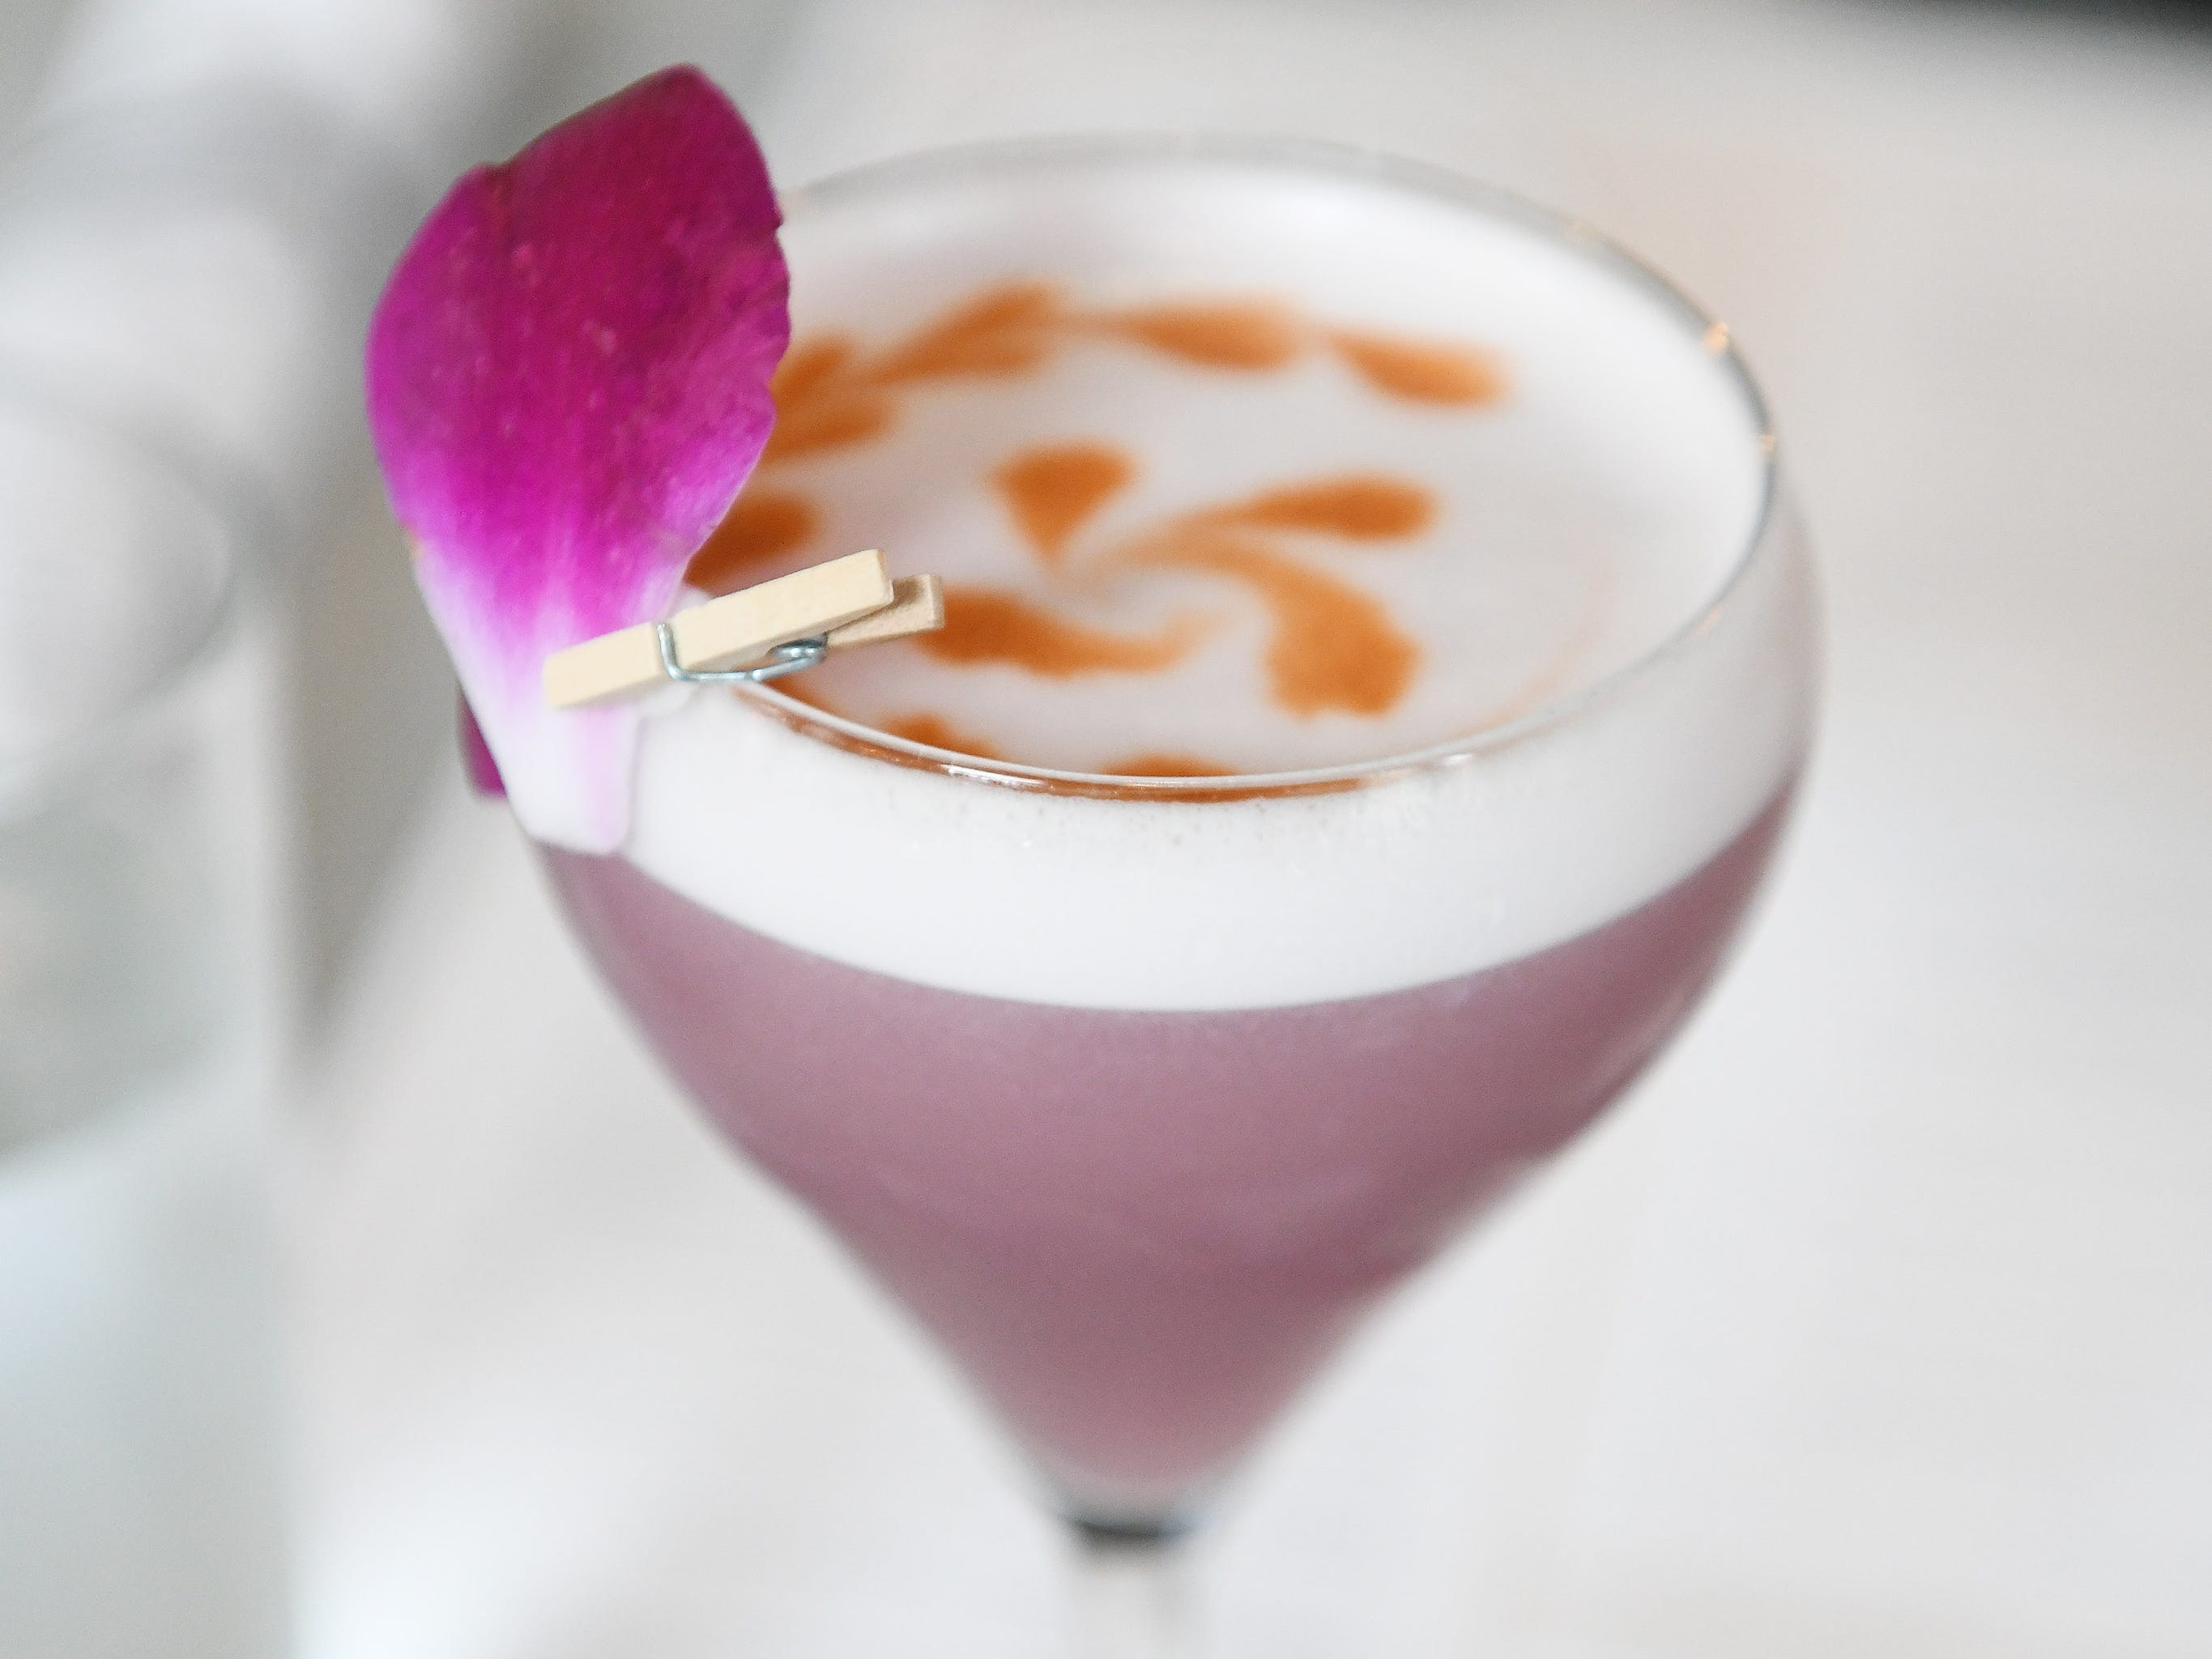 A drink called Still Life made with Citadelle gin, mulled wine reduction, lemon, becherovka, absinthe, egg white and decorated with an orchid.